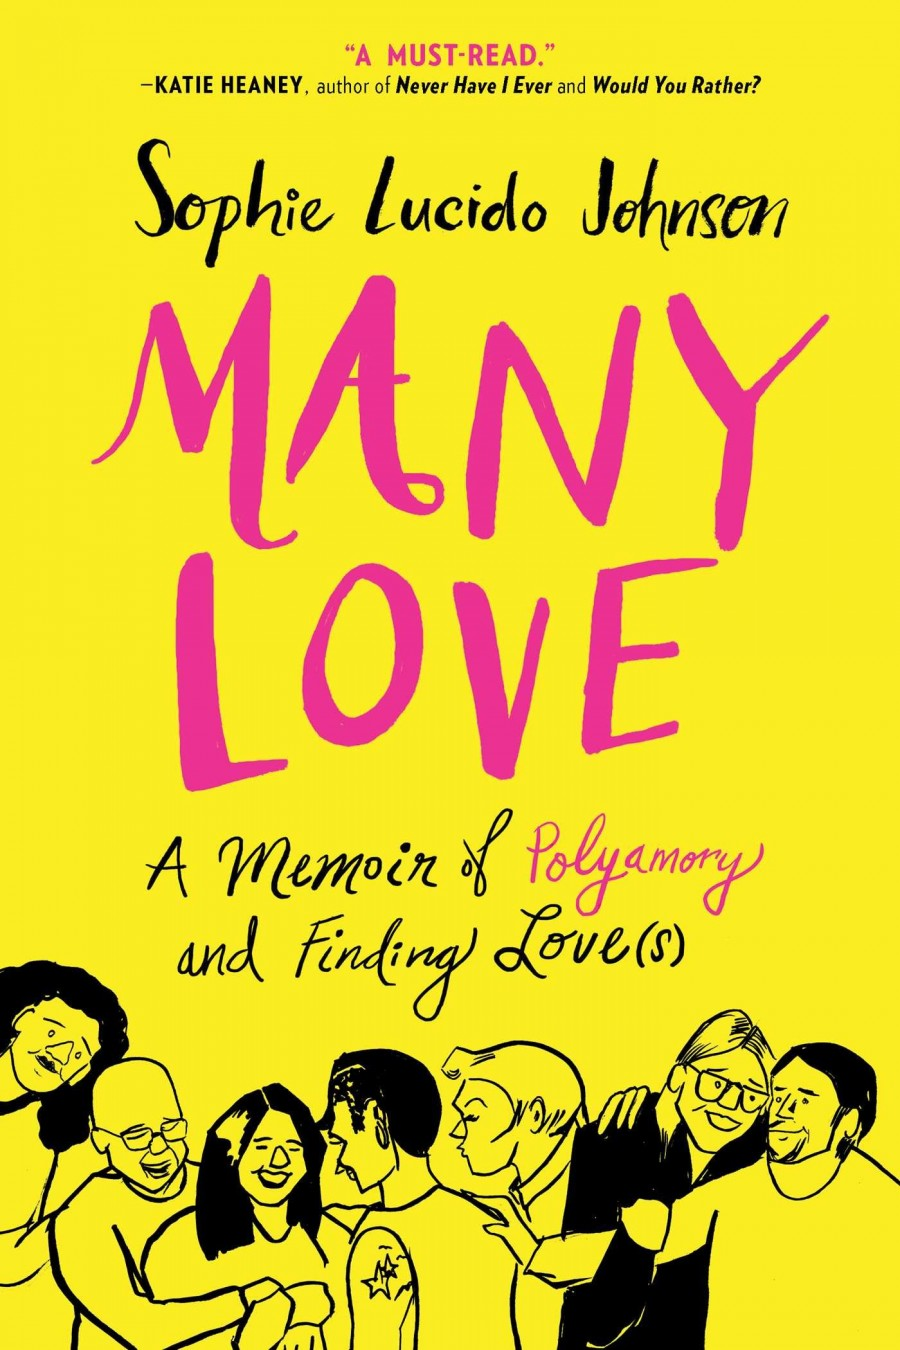 Many Love: A Memoir of Polyamory and Finding Love(s) by Sophie Lucido Johnson